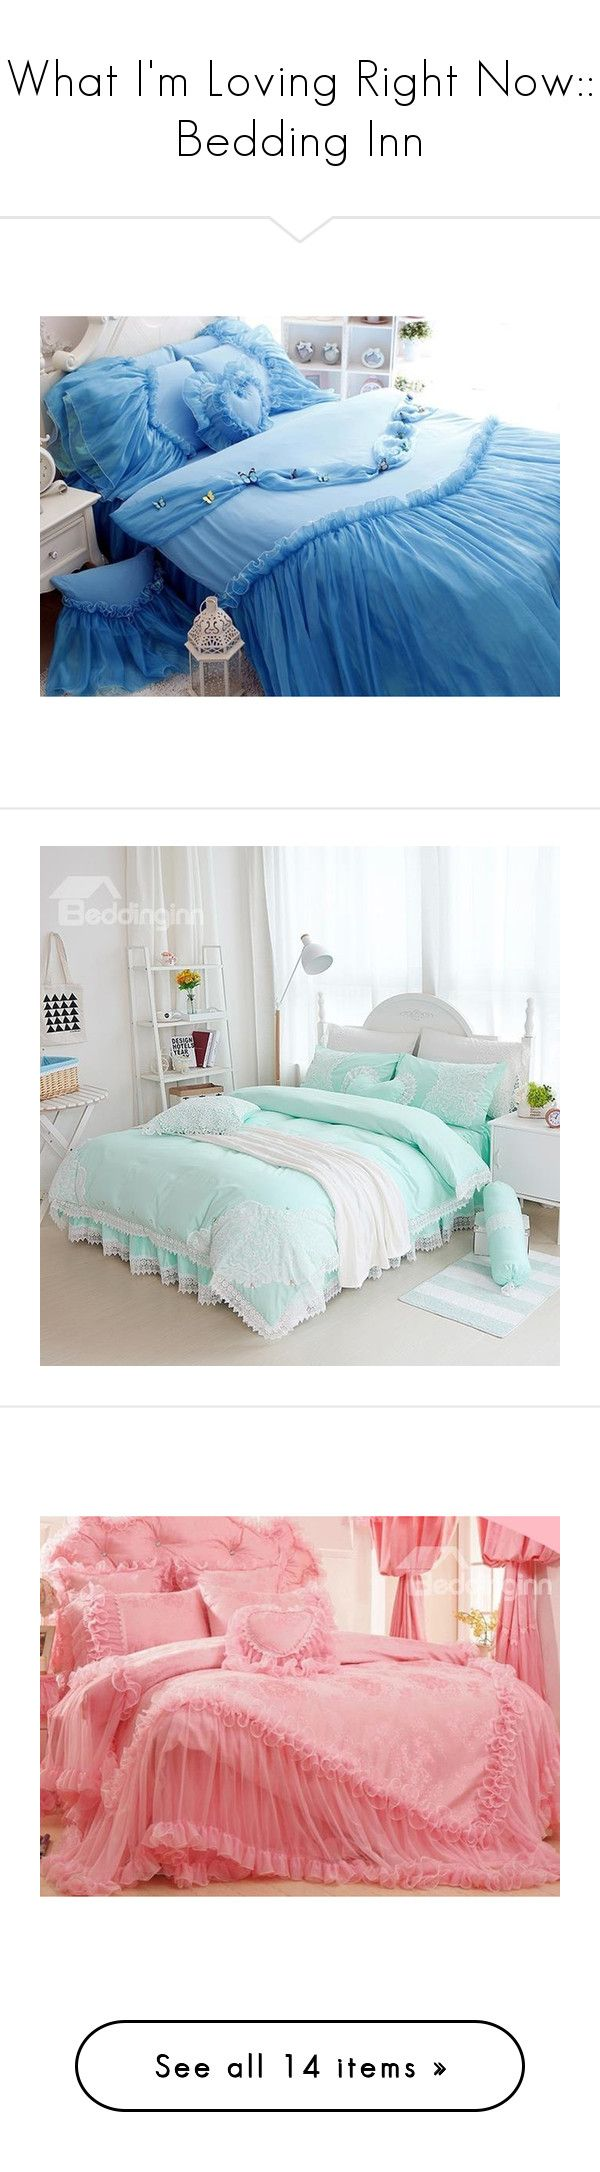 """""""What I'm Loving Right Now:: Bedding Inn"""" by sbhackney ❤ liked on Polyvore featuring home, bed & bath, bedding, duvet covers, cotton duvet sets, lace bedding sets, cotton bedding, cotton bed set, cotton duvet cover set and children's room"""